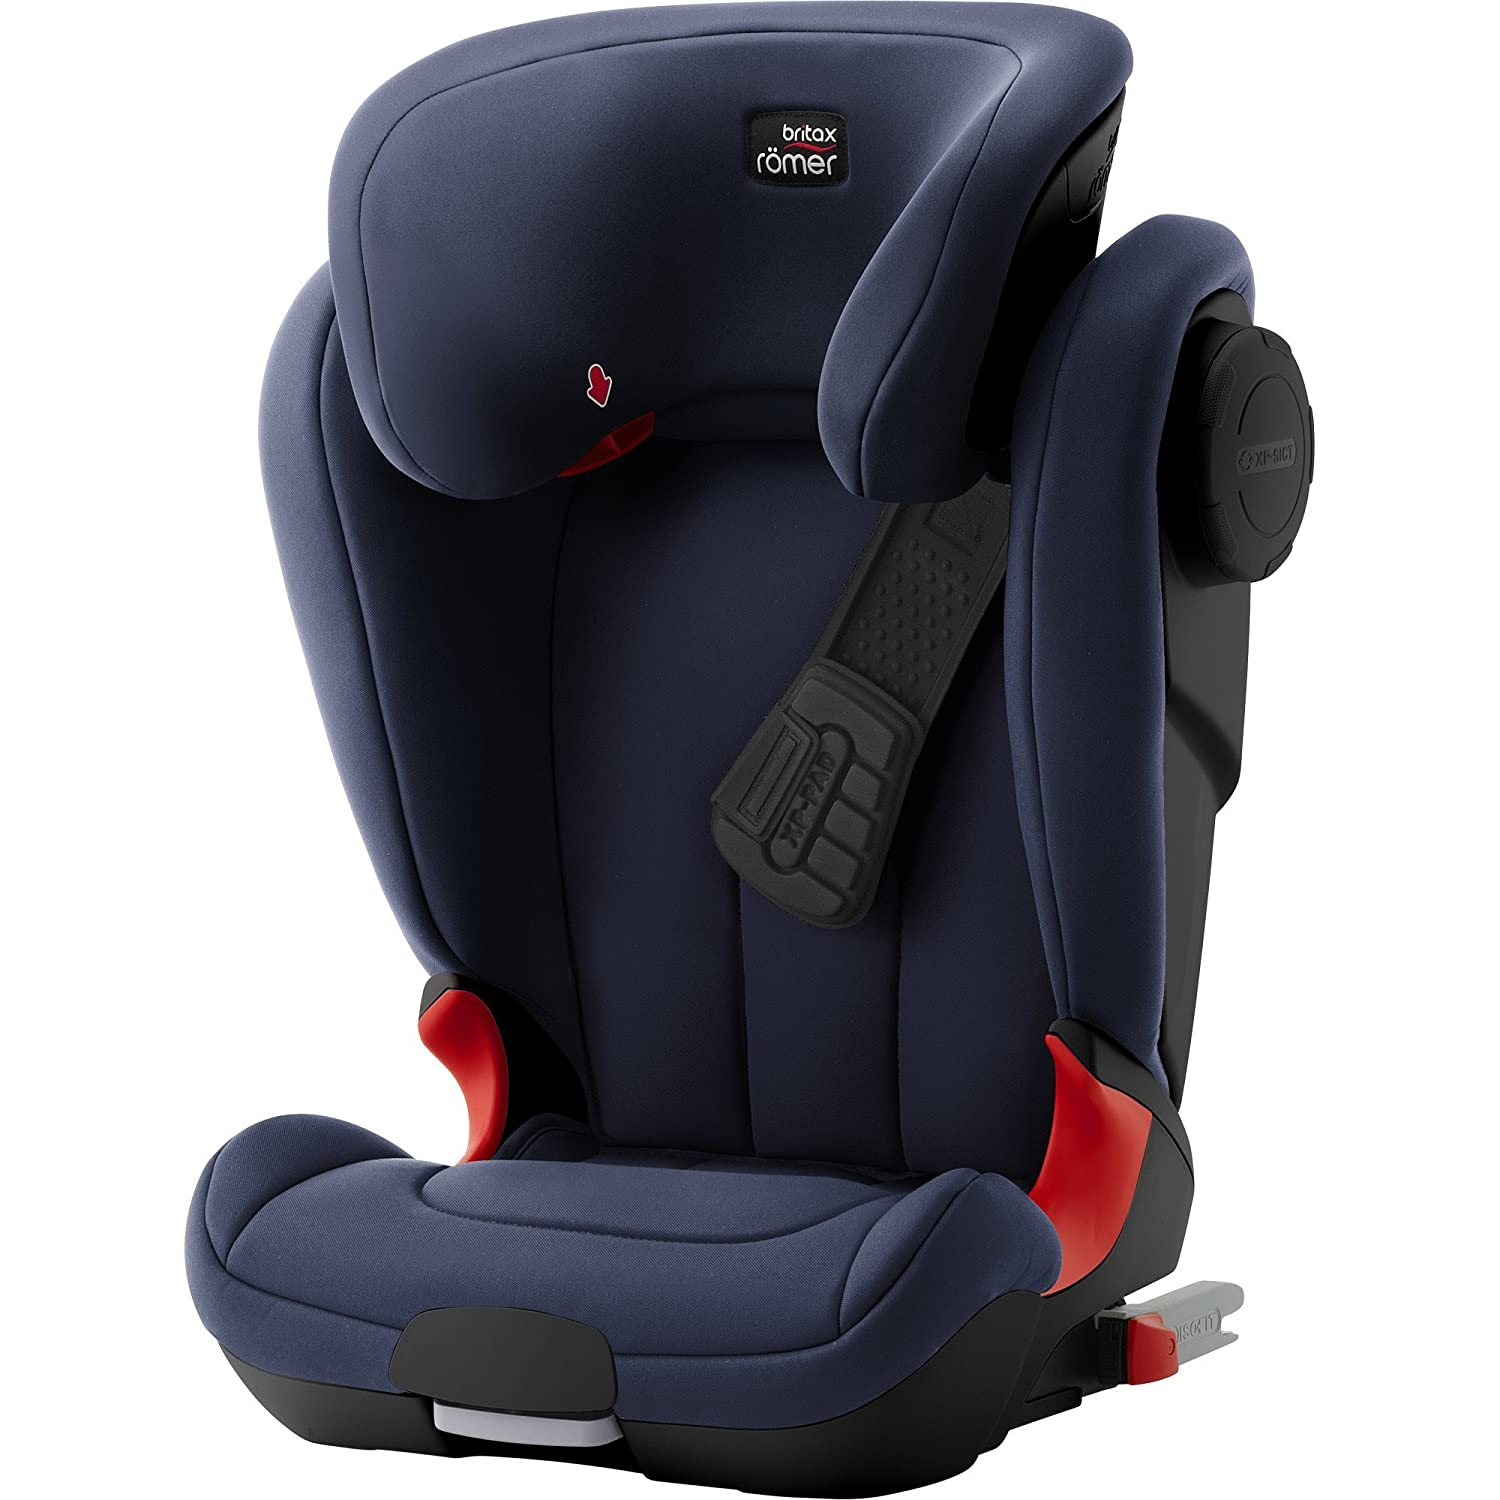 Britax Römer KIDFIX XP SICT BLACK SERIES Group 2-3 (15-36kg) Car Seat - Cosmos Black 2000027562